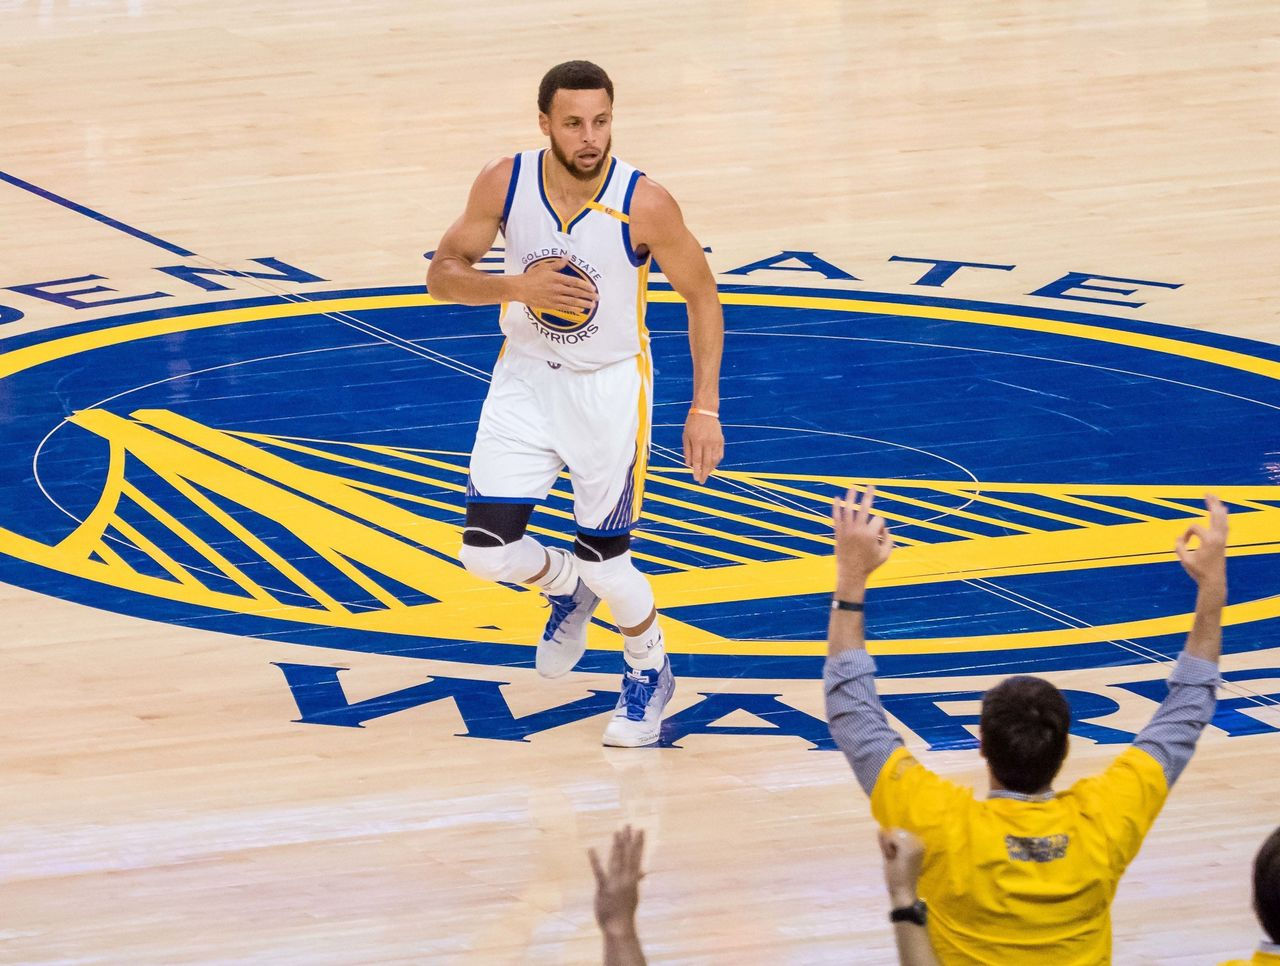 Cropped 2017 05 17t015245z 20214173 nocid rtrmadp 3 nba playoffs san antonio spurs at golden state warriors